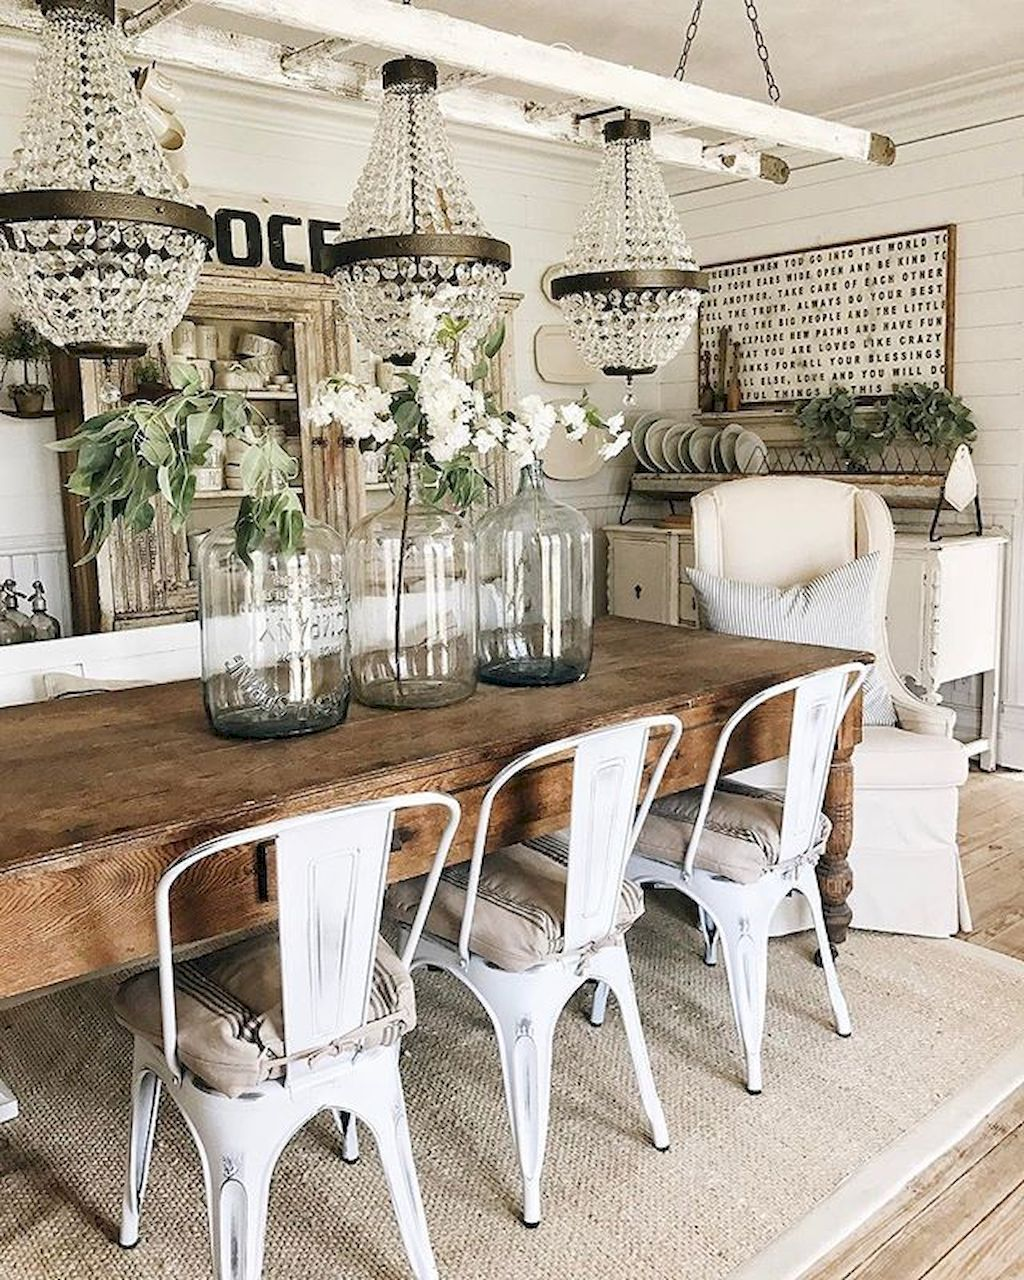 Farmhouse Dining Room Ideas Are Adorable And Lasting This Is Simple And Stun Modern Farmhouse Dining Modern Farmhouse Dining Room Farmhouse Dining Rooms Decor